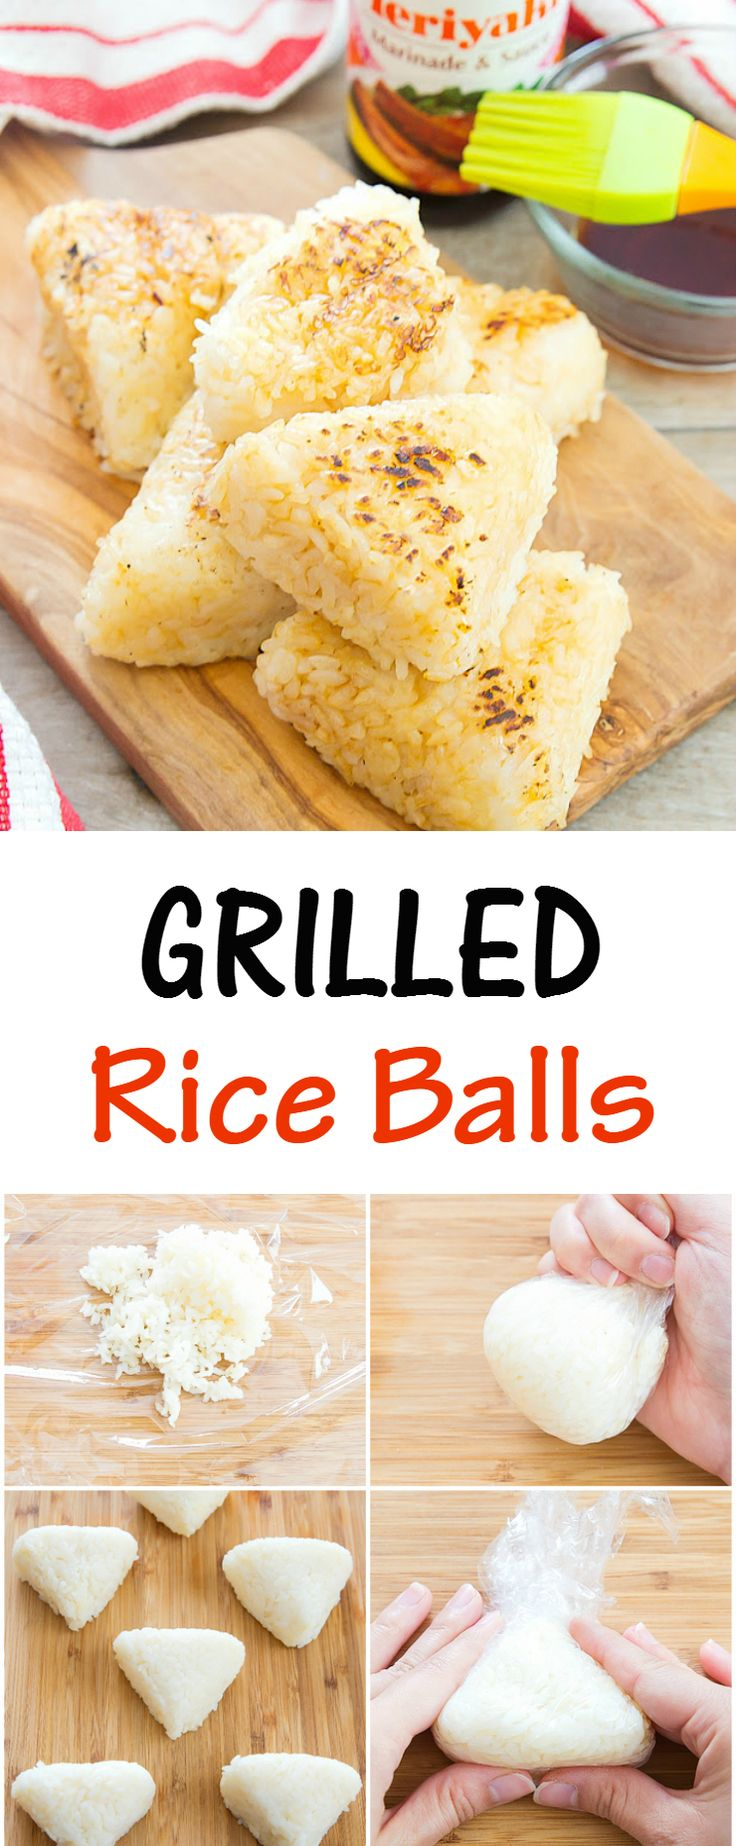 Grilled Teriyaki Rice Balls. An easy and unique item to add to your summer bbq menu. #ad